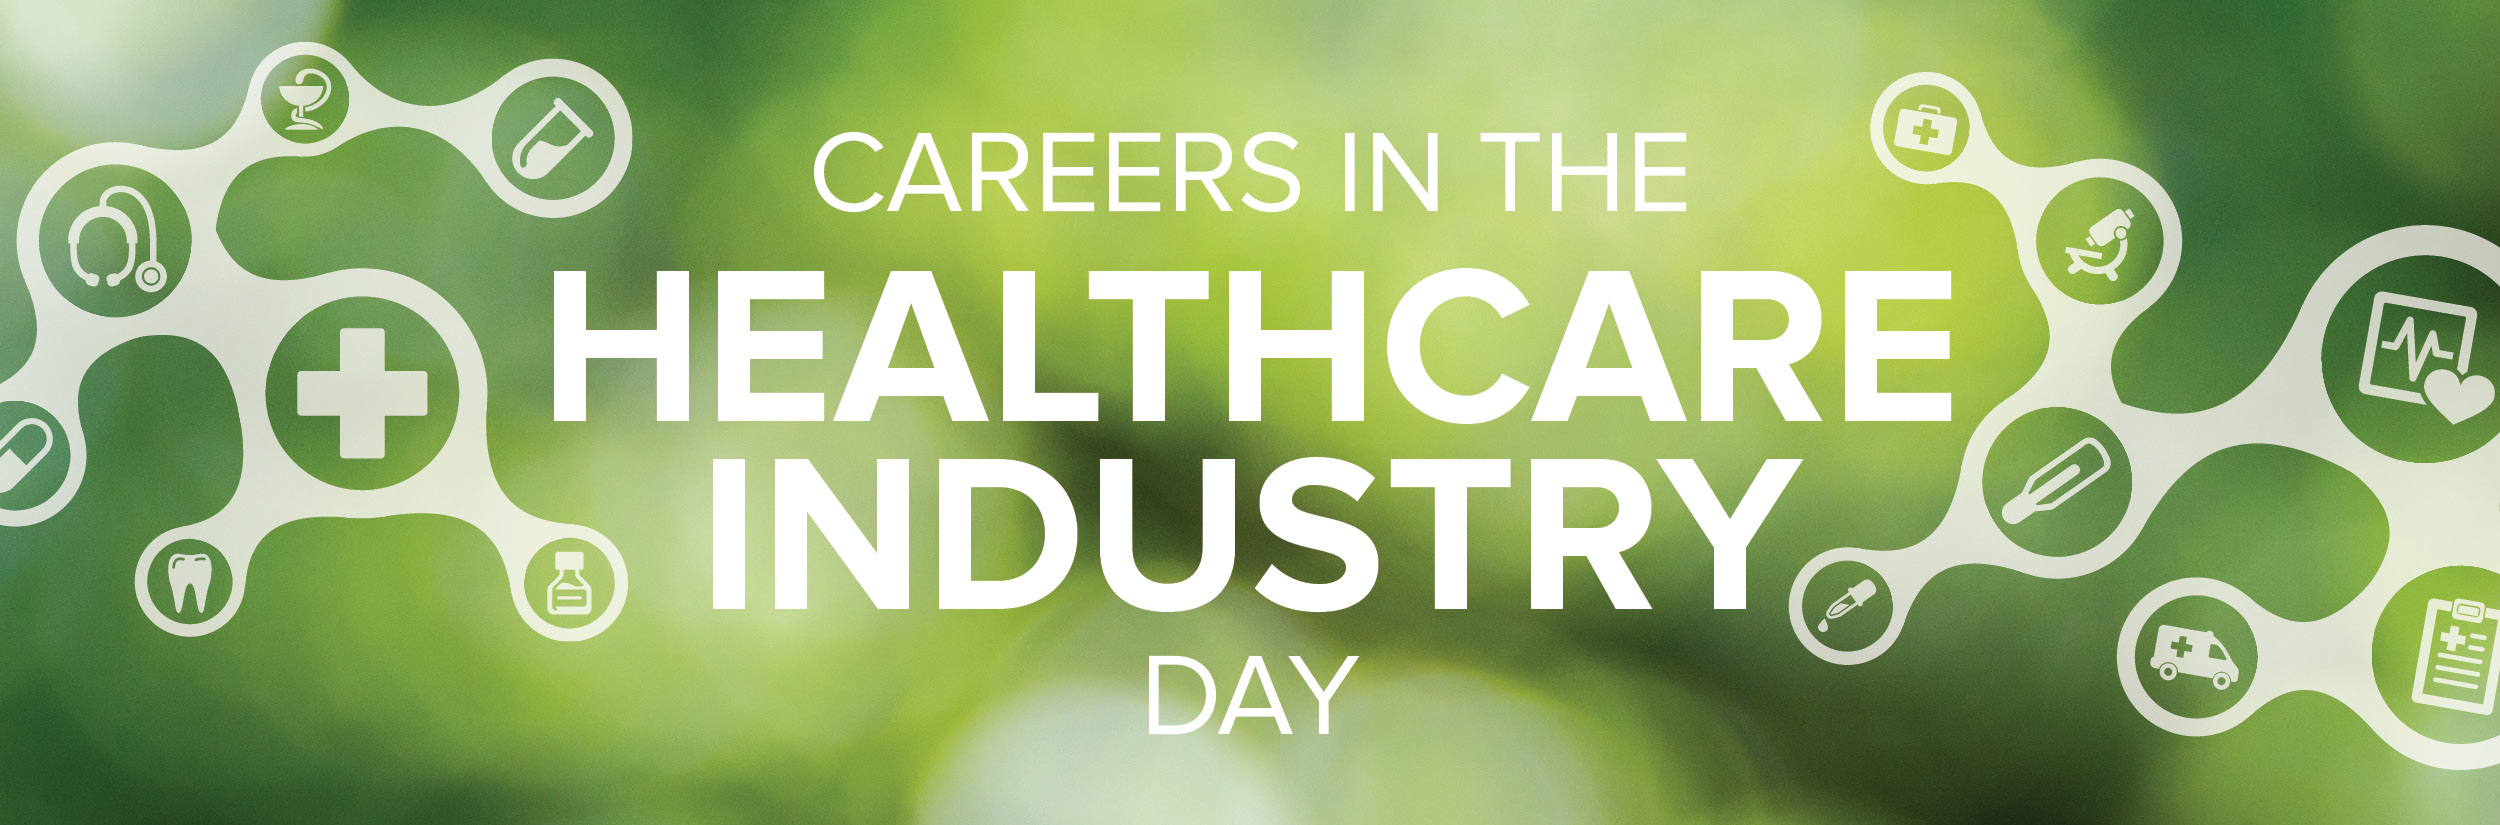 Careers in the Healthcare Industry